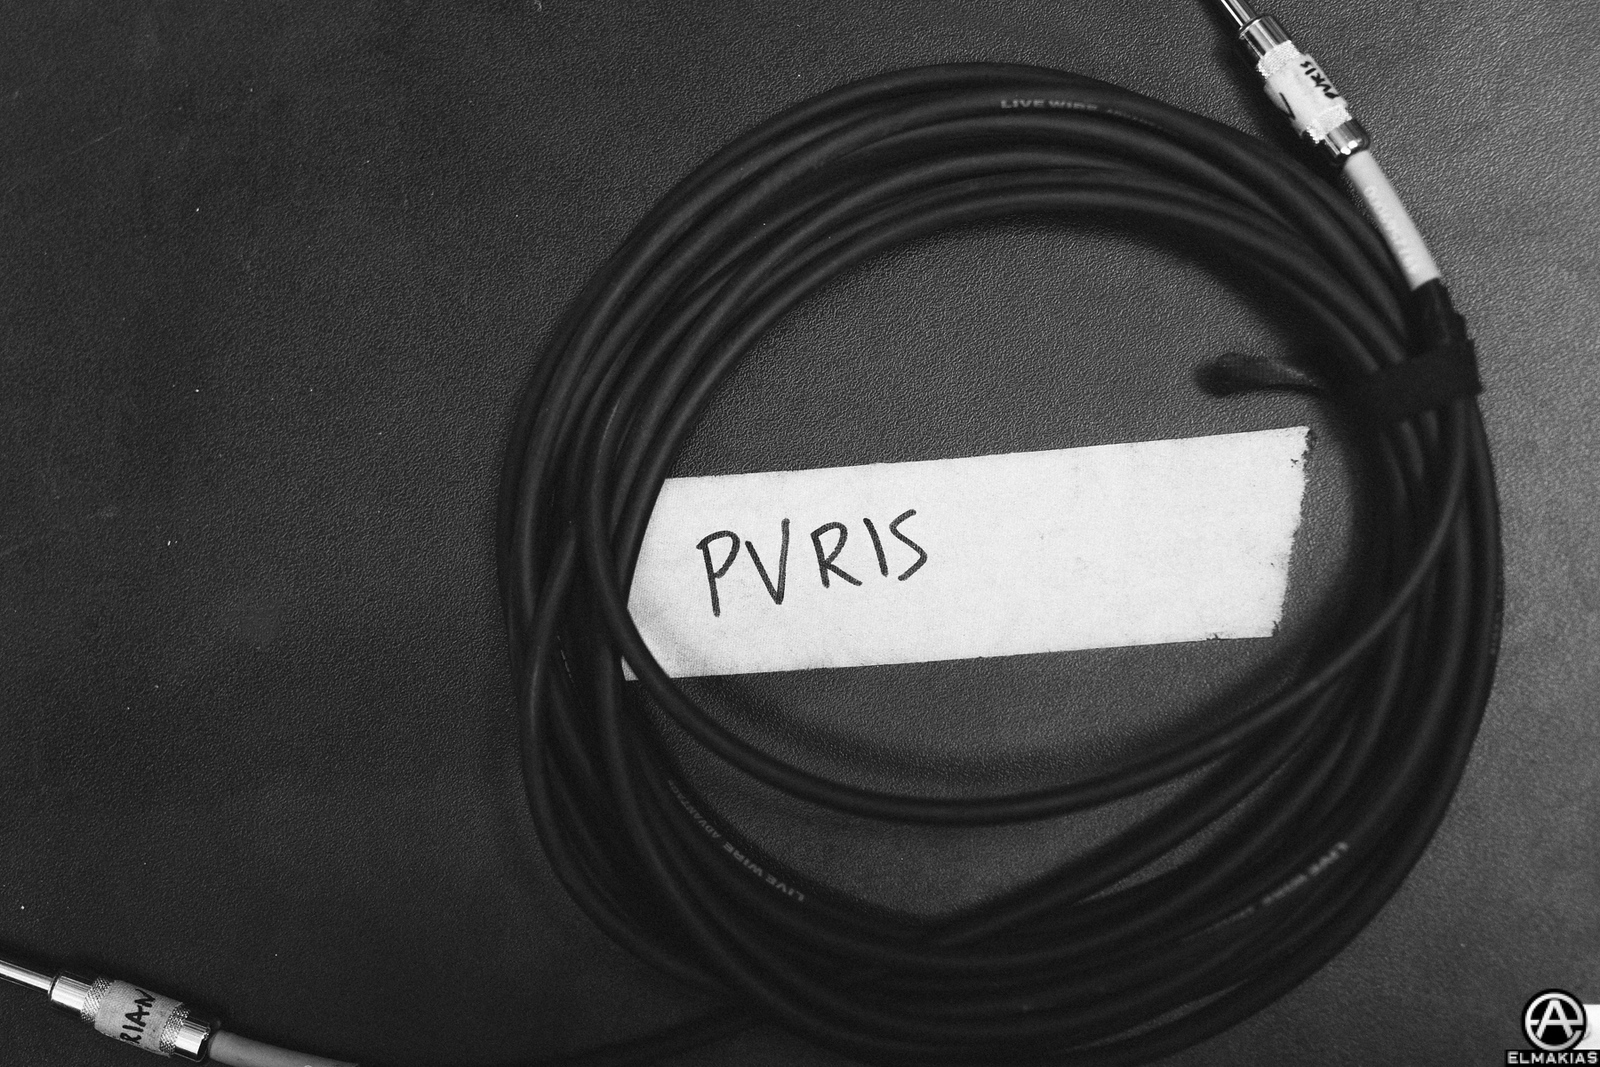 PVRIS was here by Adam Elmakias at Vans Warped Tour 2015